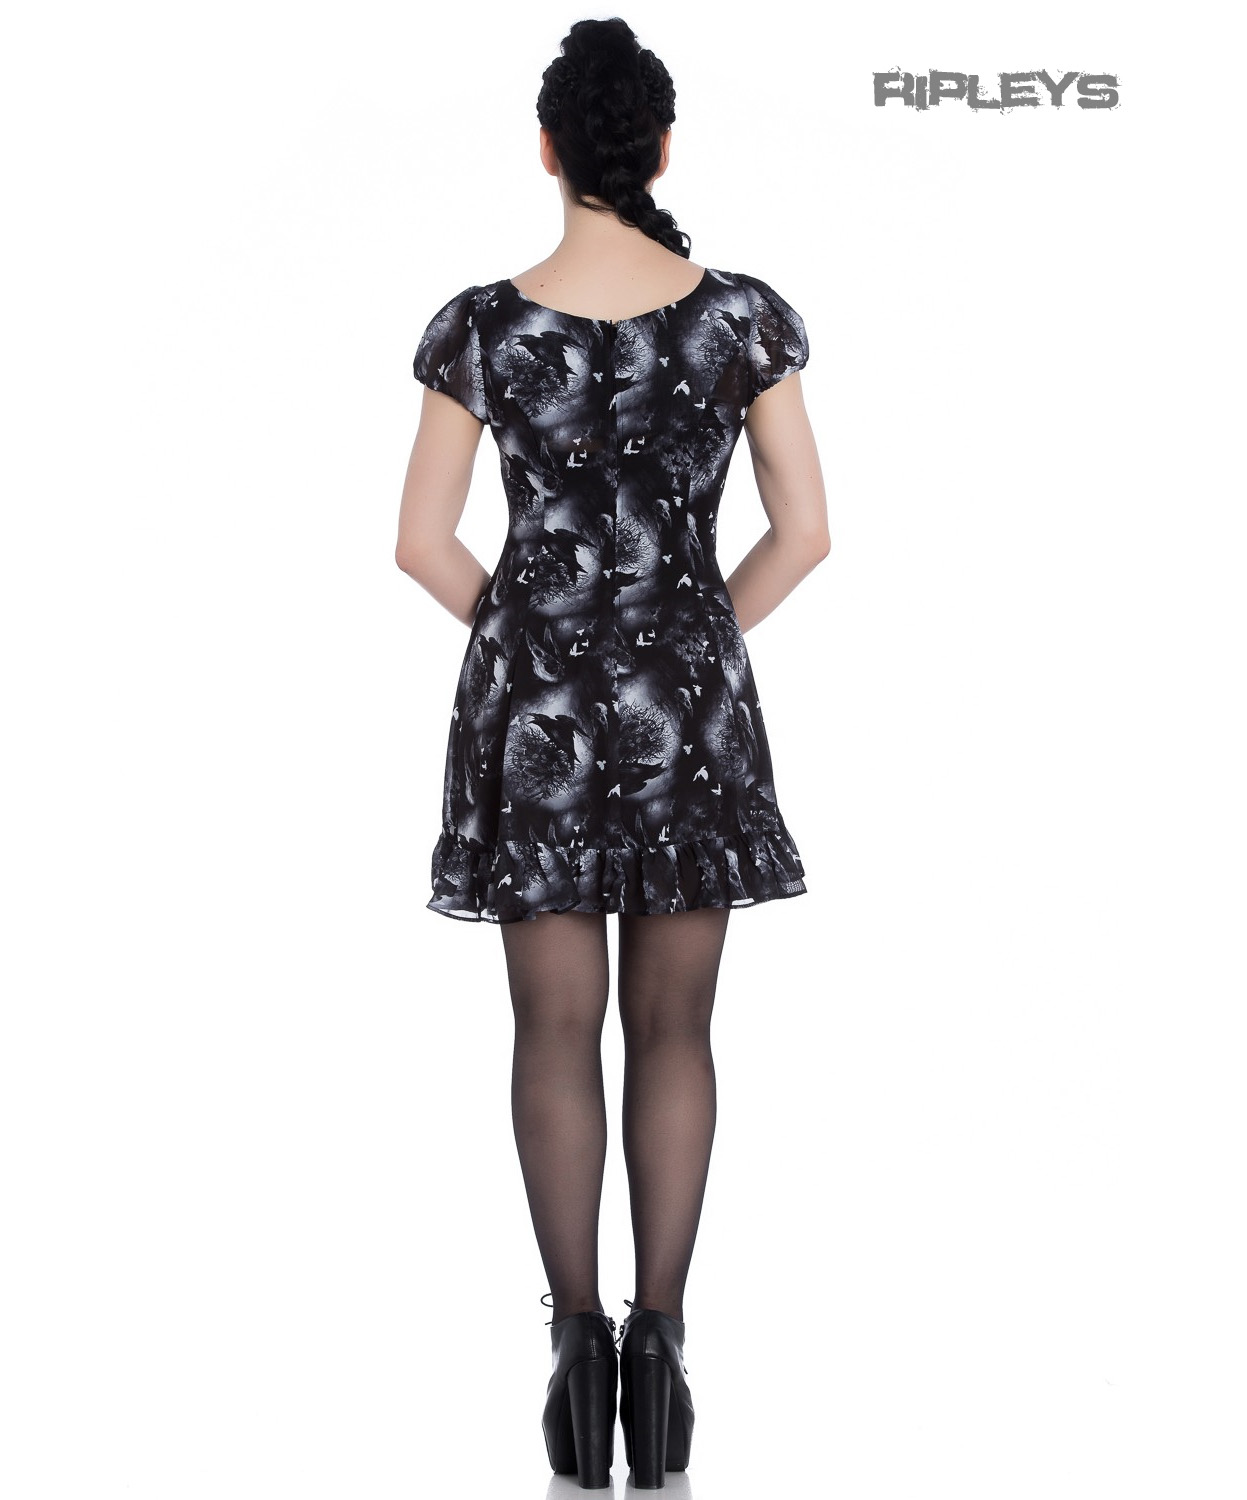 Hell-Bunny-Alchemy-Gothic-Black-Skater-Mini-Dress-ASH-Crows-Skulls-All-Sizes thumbnail 28